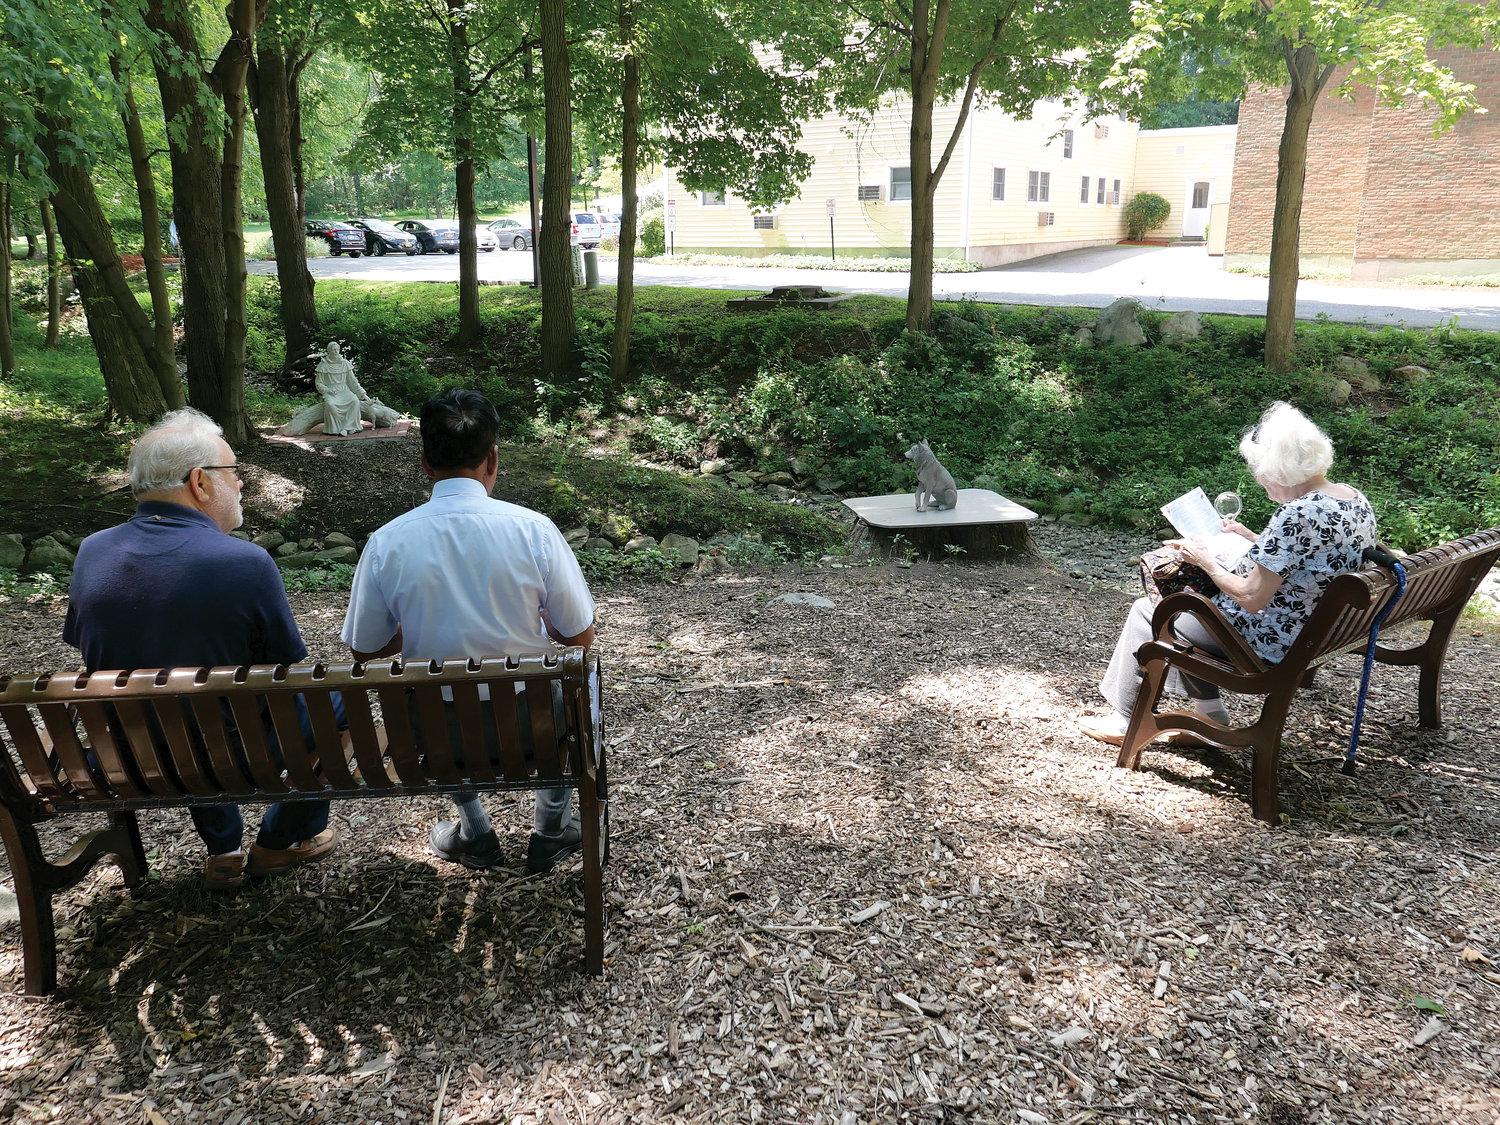 Parishioners sit in the St. Francis Prayer Garden, one of two new outdoor shrines blessed and dedicated at St. Elizabeth Ann Seton parish in Shrub Oak Aug. 11. The garden is a project of the parish's Portiuncula Fraternity of the Secular Franciscan Order.